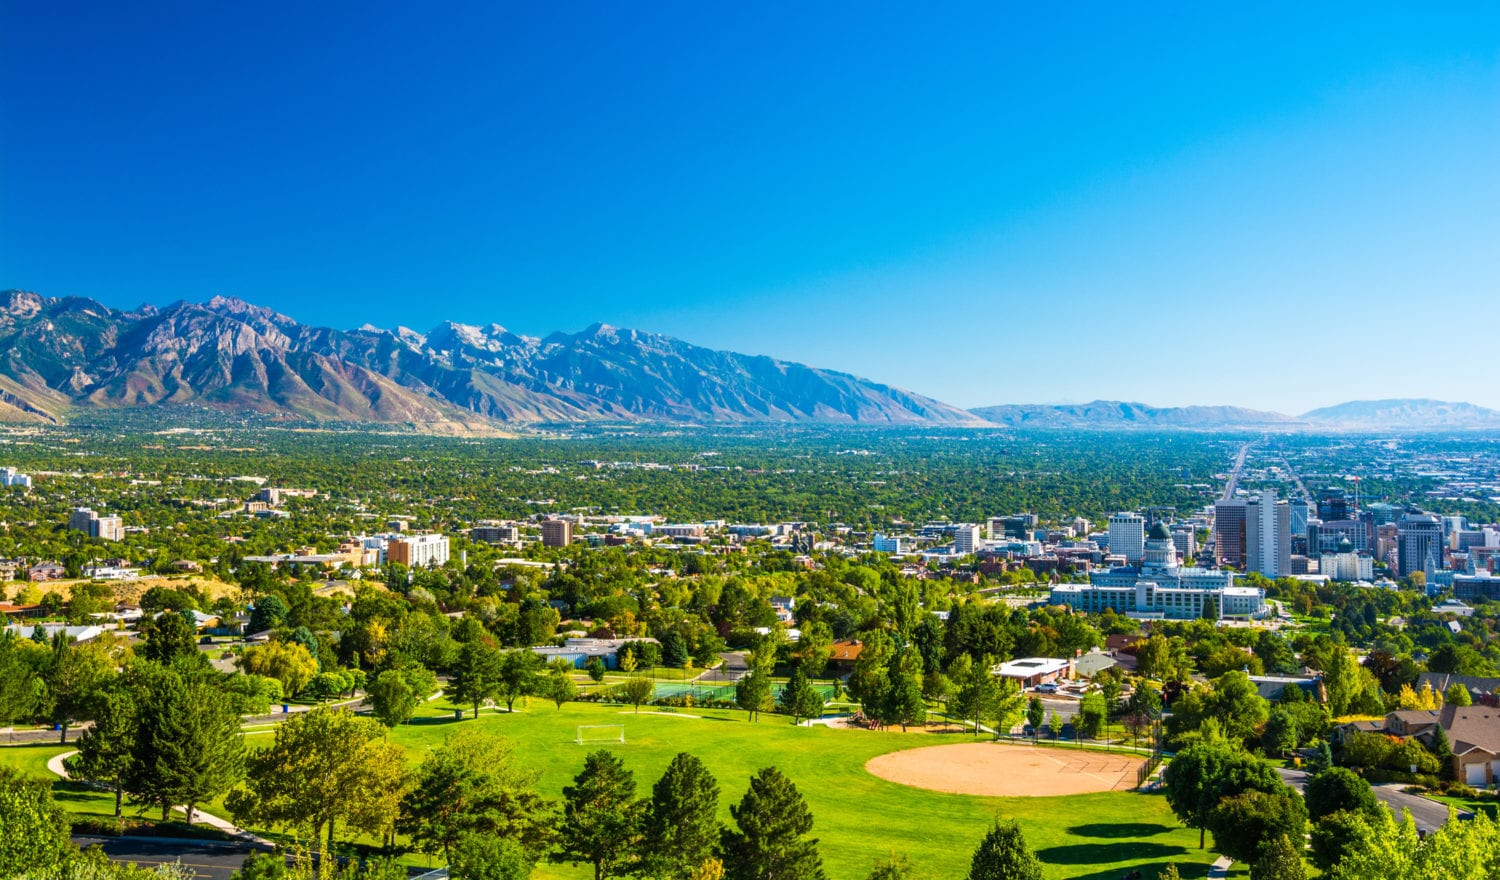 Salt Lake City aerial skyline view with a park in the foreground, downtown to the right, and the Wasatch Range mountain range far in the distance.